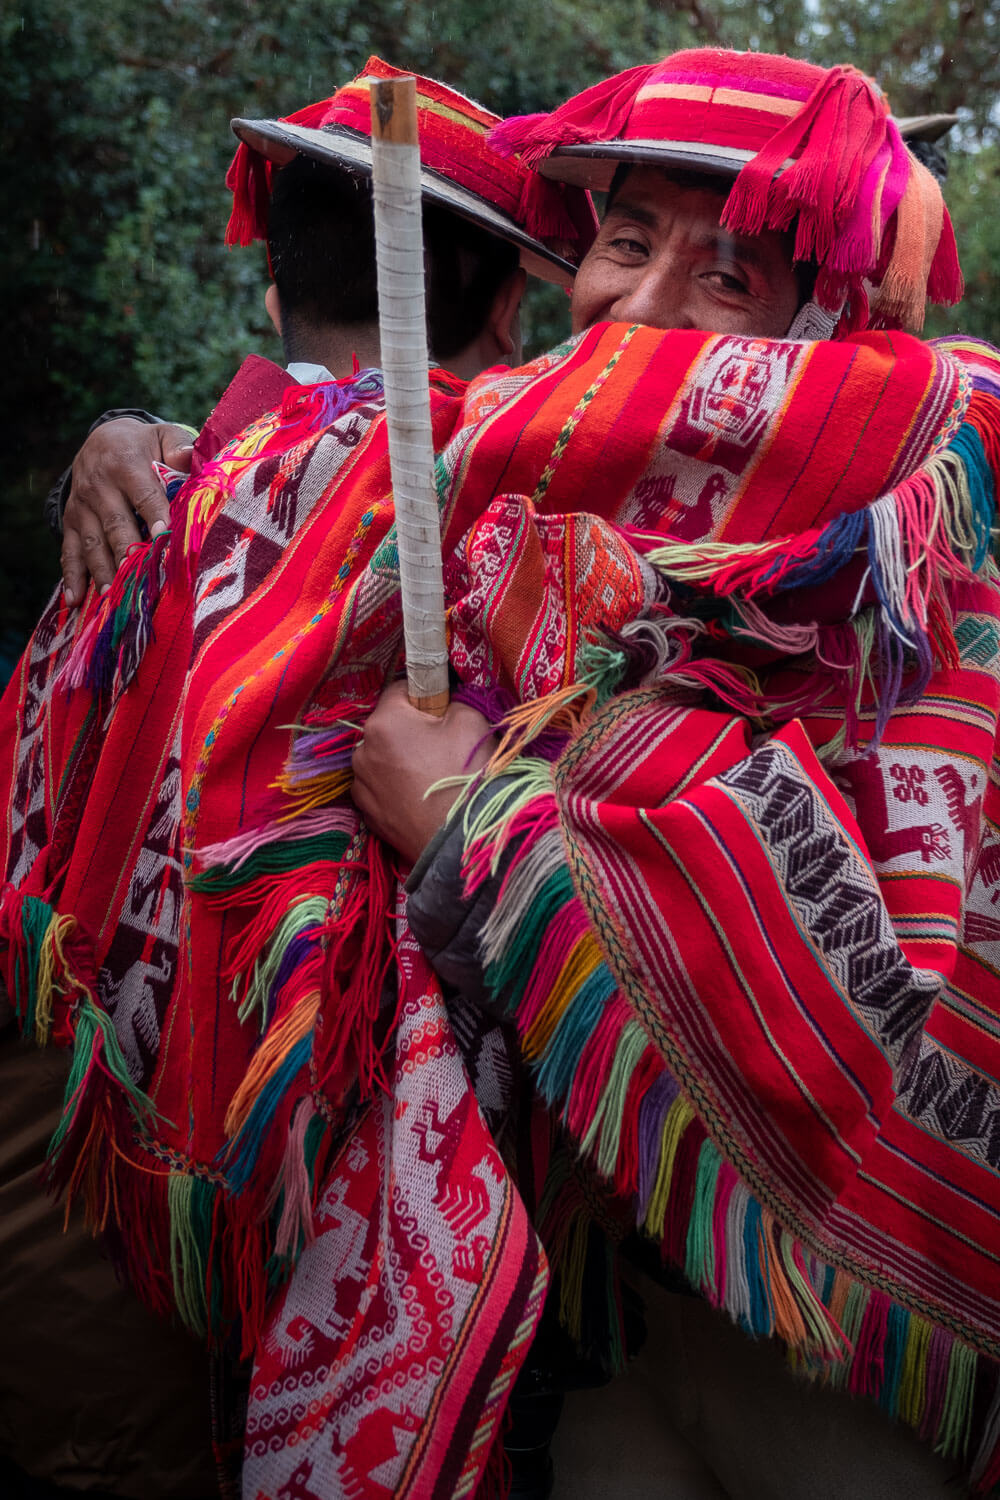 "Saying goodbye to the weavers of Patacancha, The Sacred Valley, Peru. Travel photography and guide by © Natasha Lequepeys for ""And Then I Met Yoko"". #peru #sacredvalley #patacancha #photoblog #travelblog #travelphotography #portraitphotography #travelitinerary #fujifilm #weaving #tradition #culture #people #andes #village #weavingdemonstration #cusco #ollantaytambo #travel #travelperu"